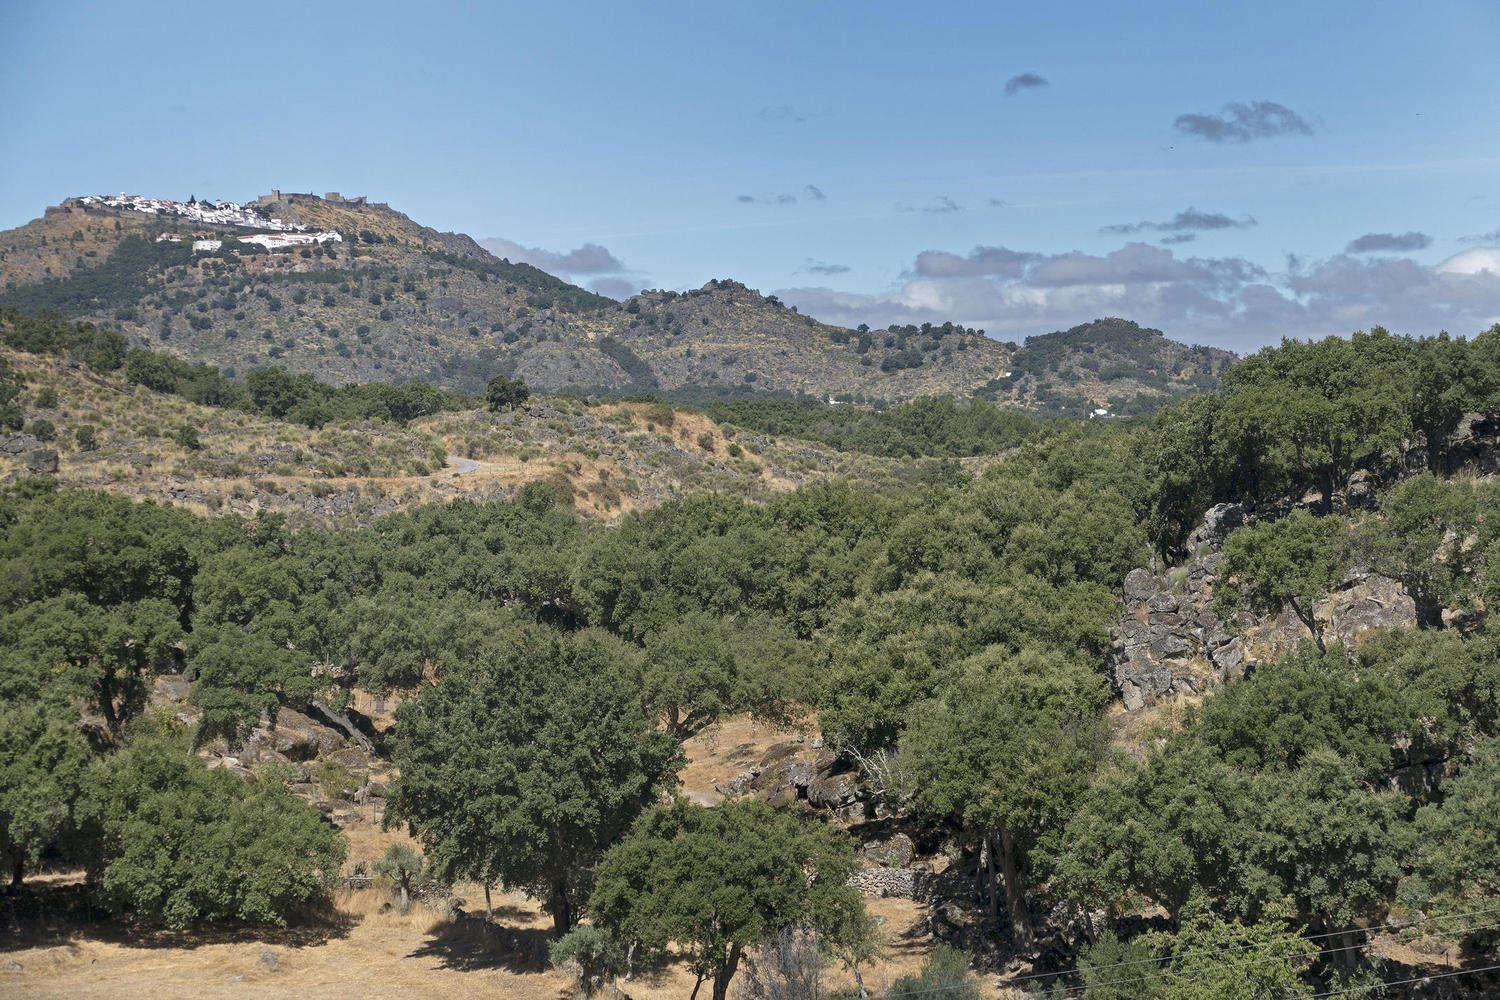 Cork trees arrayed in the foothills below Marvao